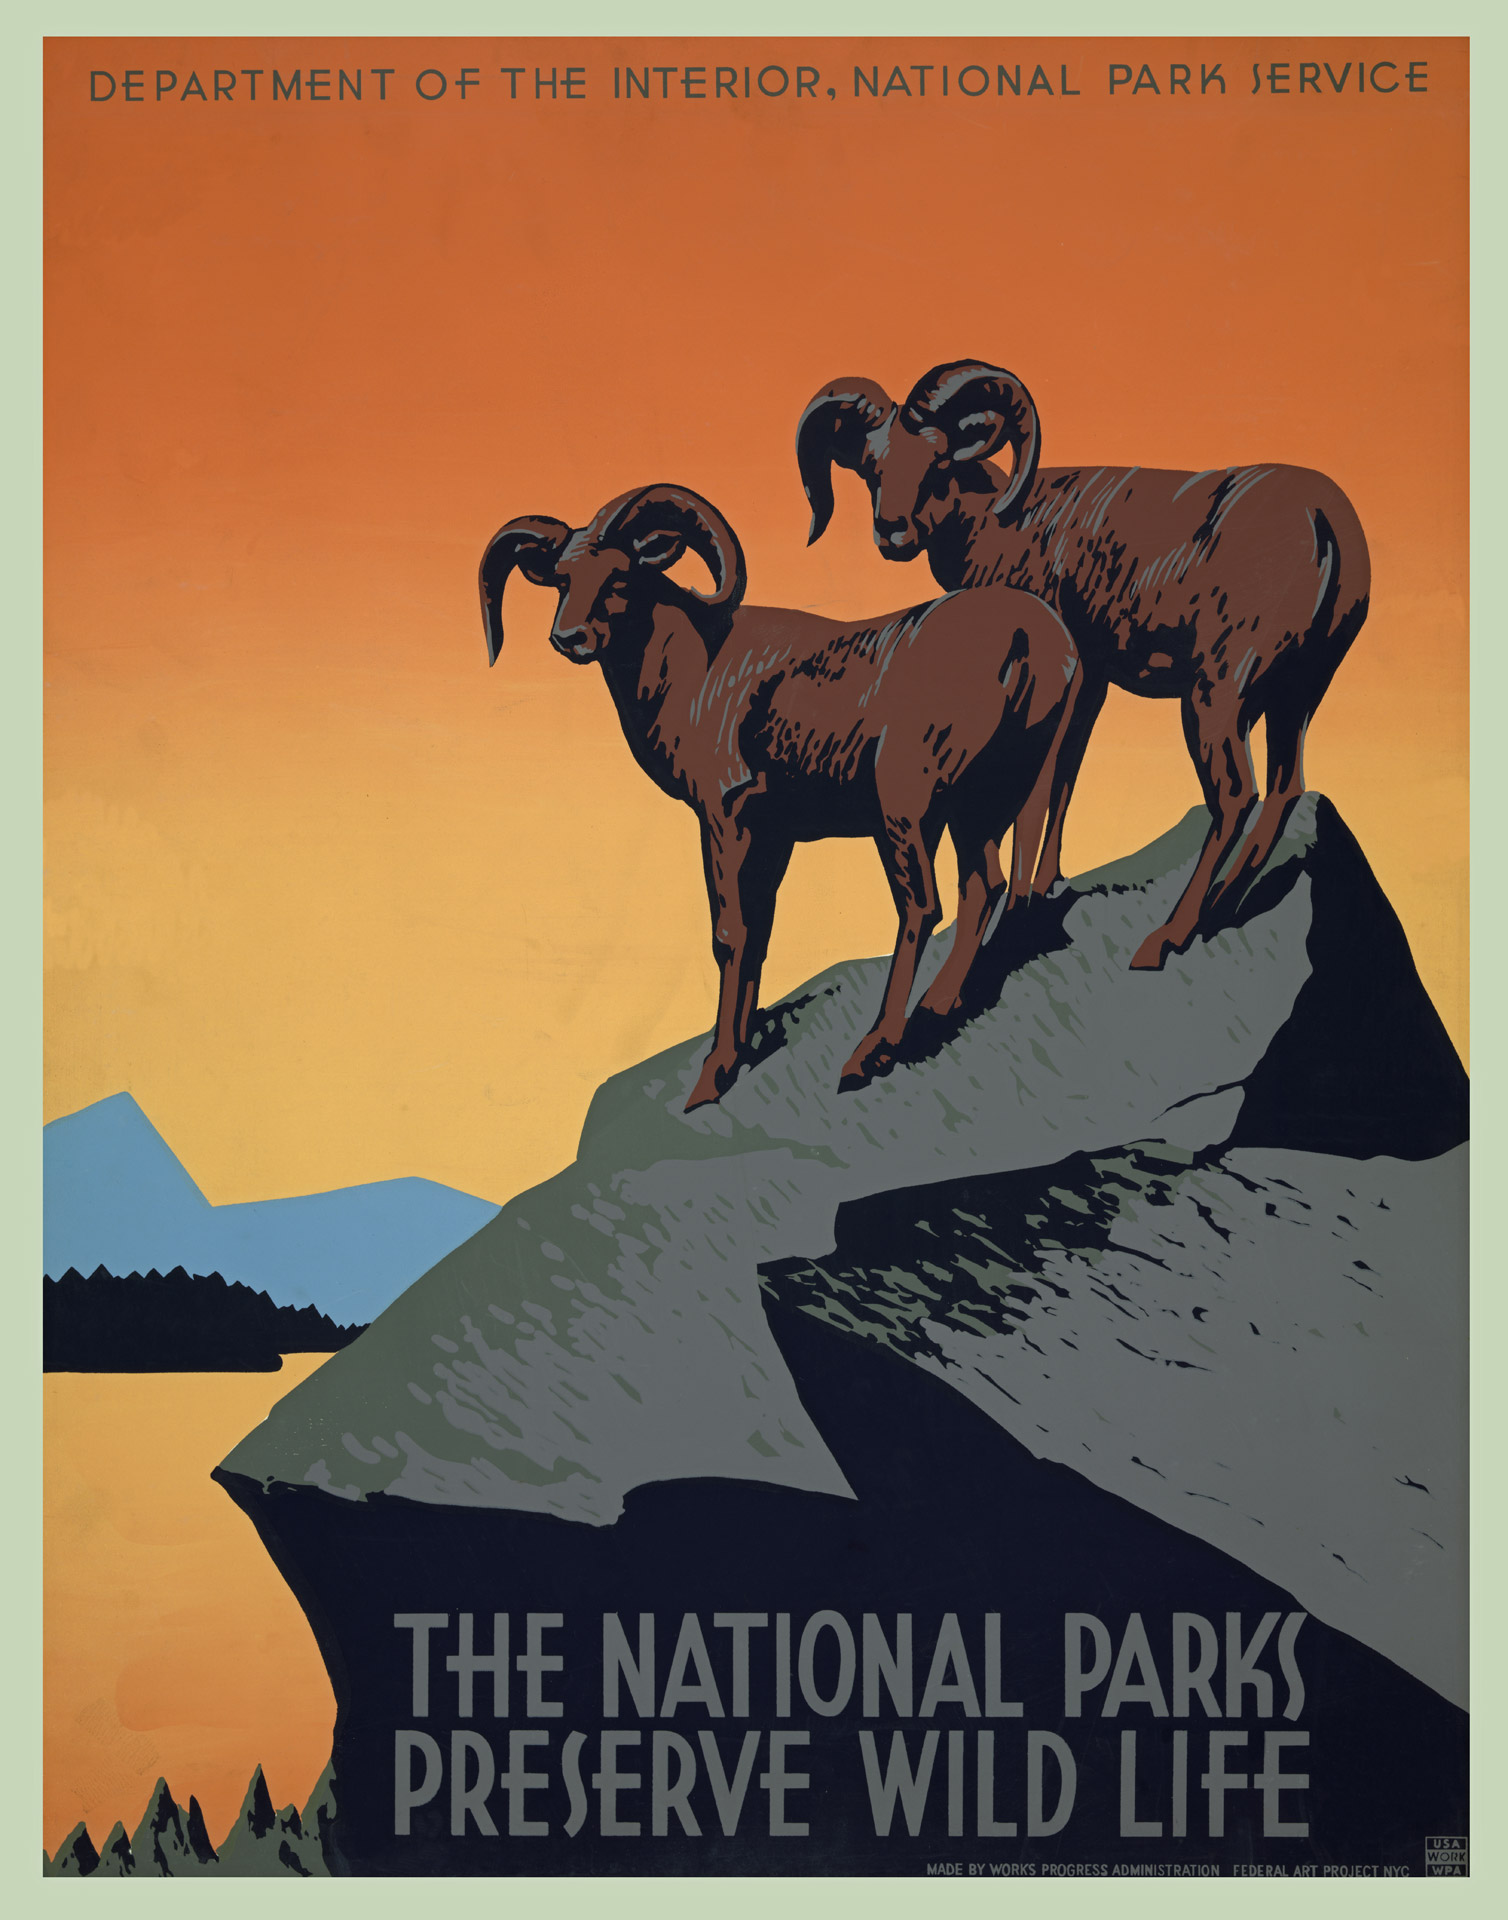 Poster Photos Vintage National Park Poster Free Stock Photo Public